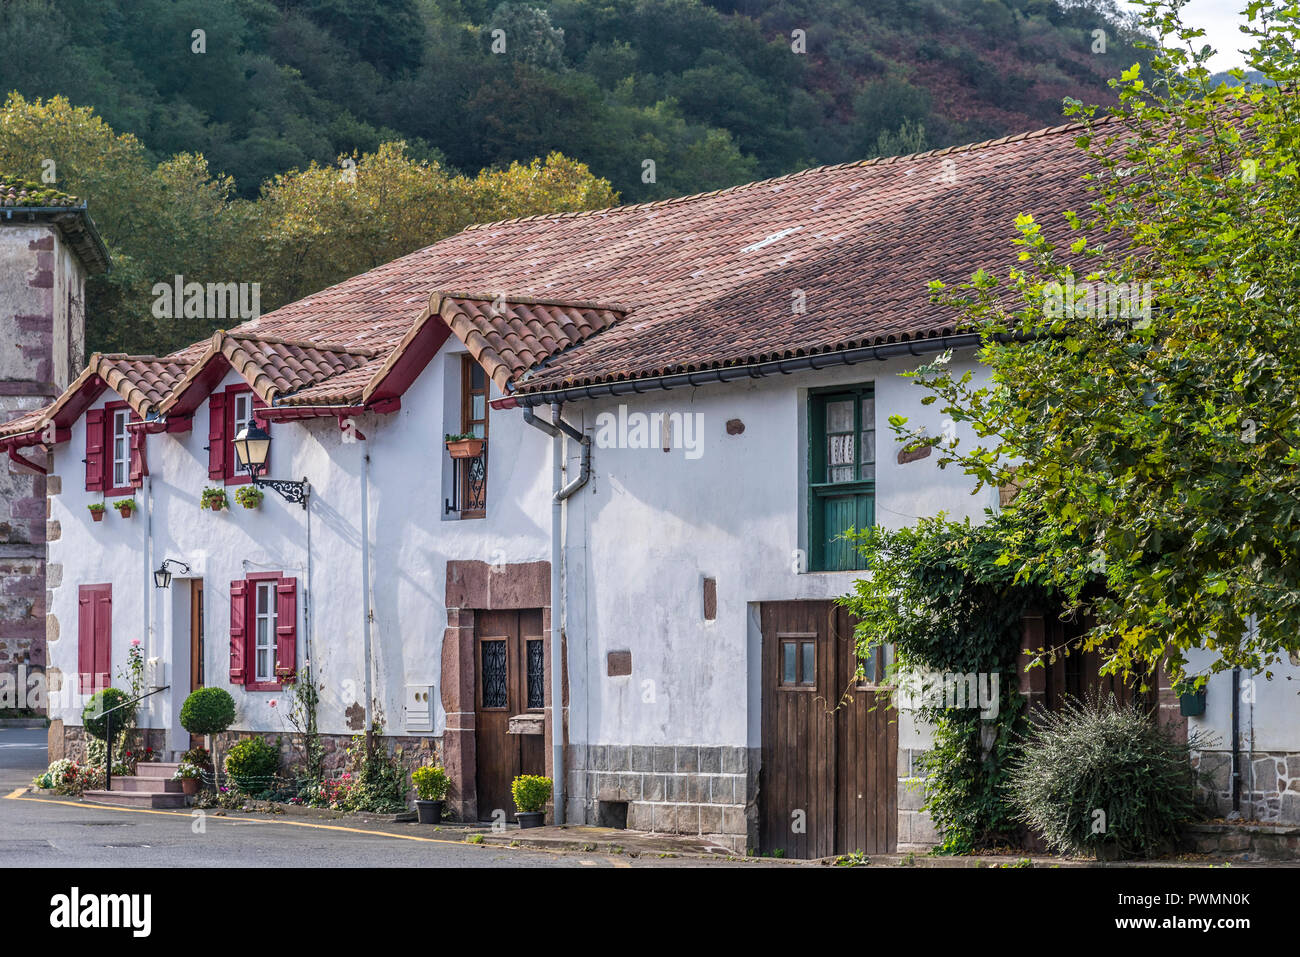 Spain, Basque Country, Navarre, country houses in Urdax (Way of Saint James, way of Baztan) - Stock Image